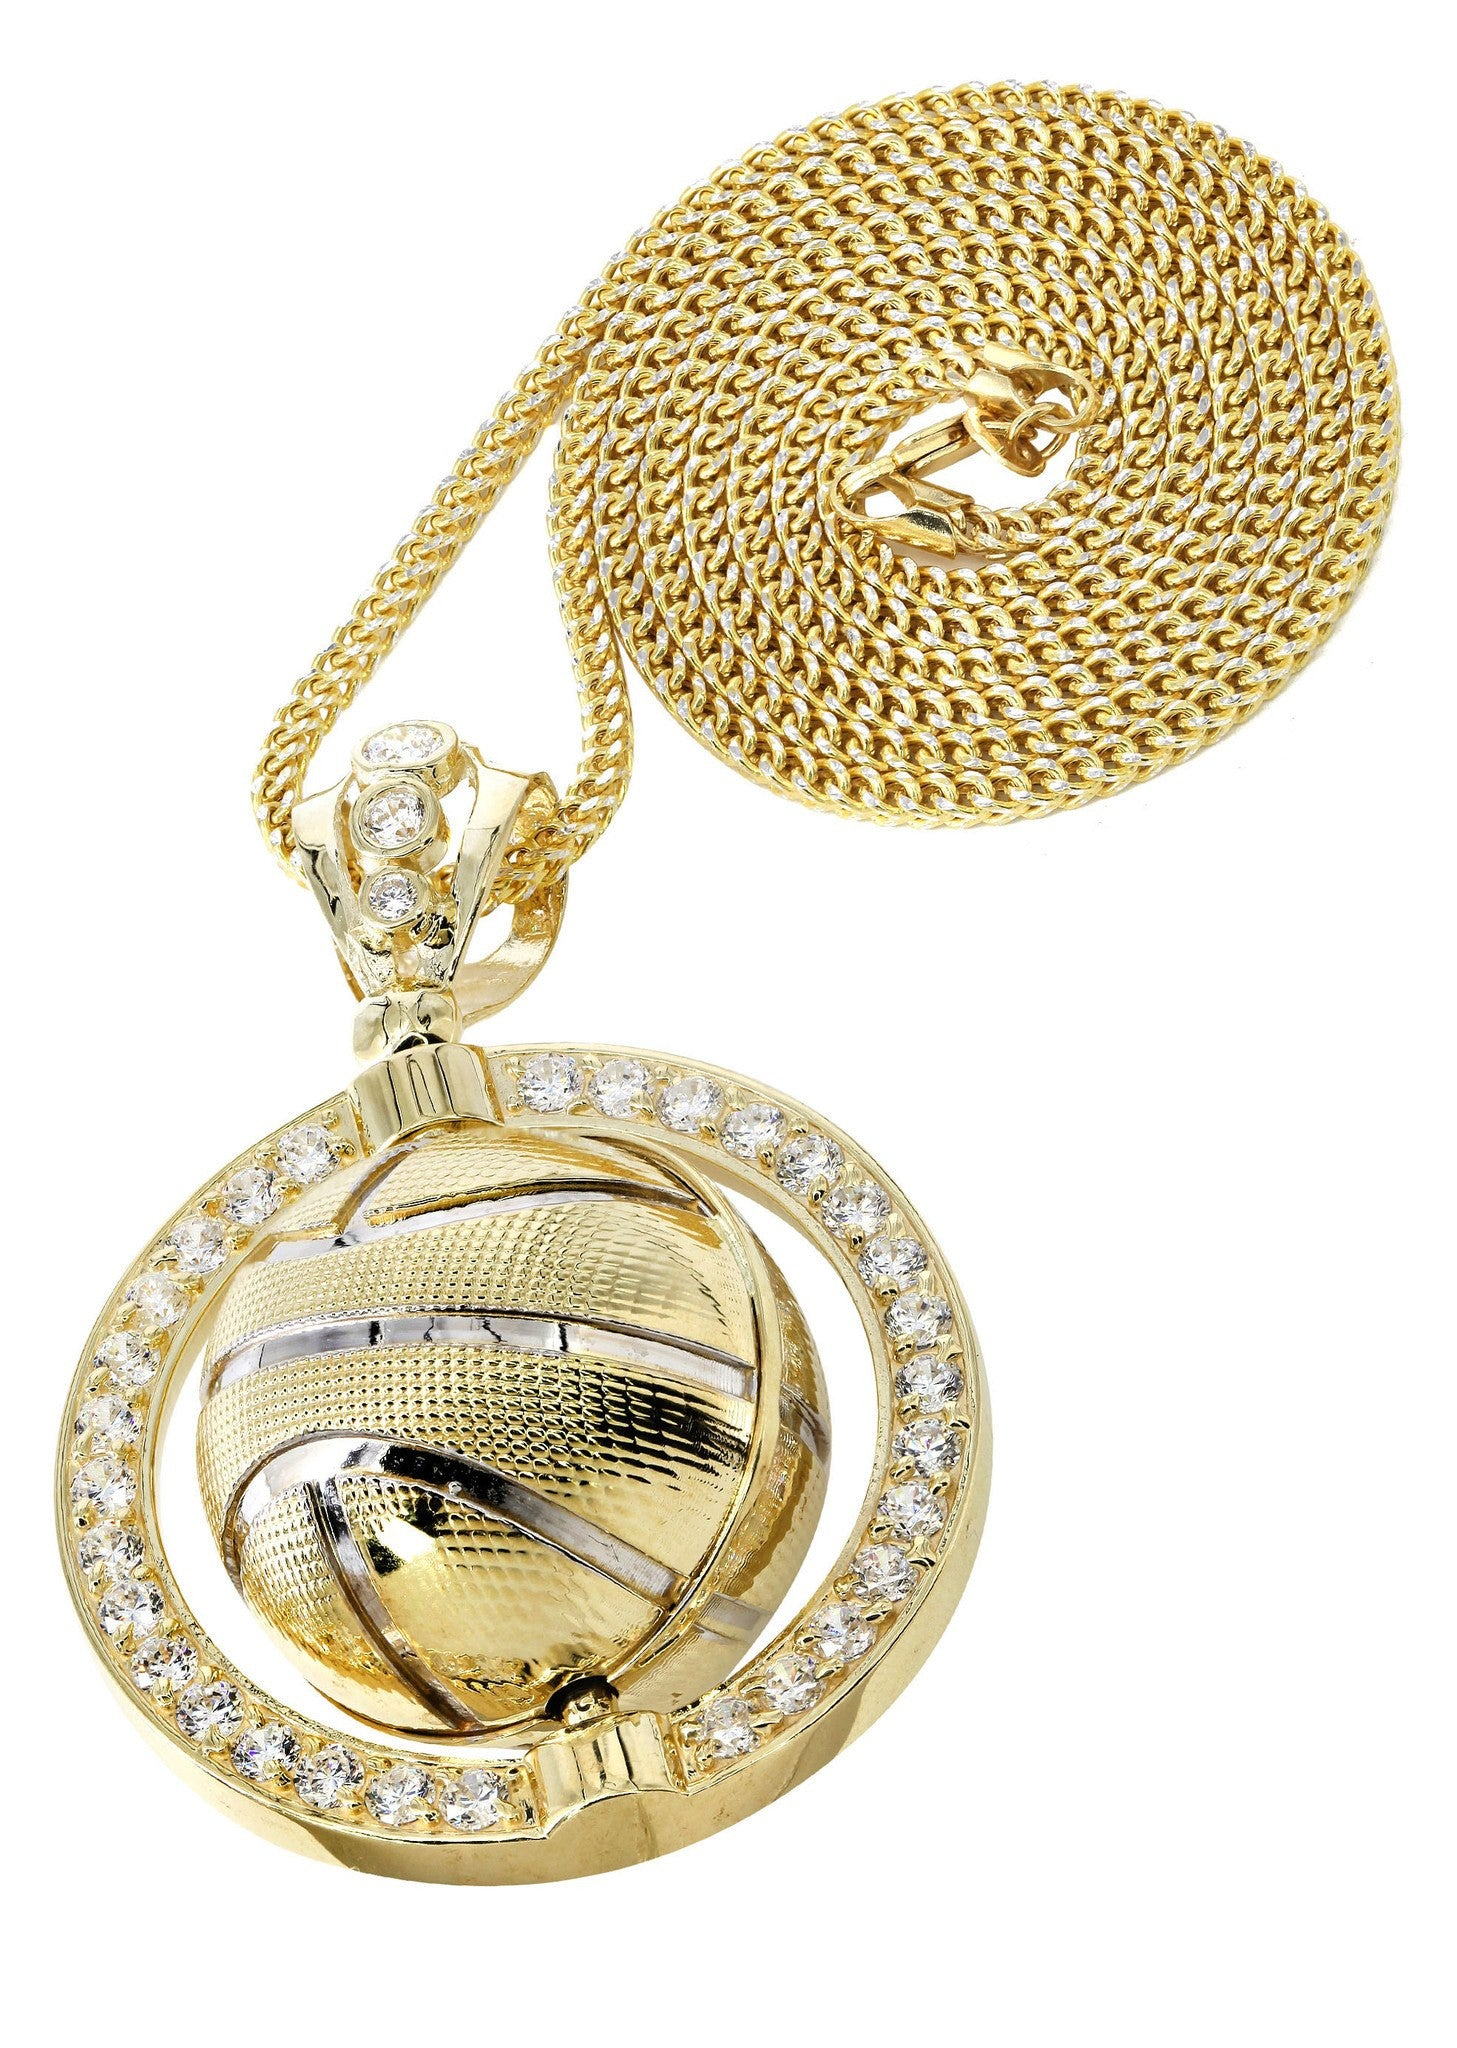 10K Yellow Gold Franco Chain & Cz Basketball Pendant / Appx. 32.3 Grams